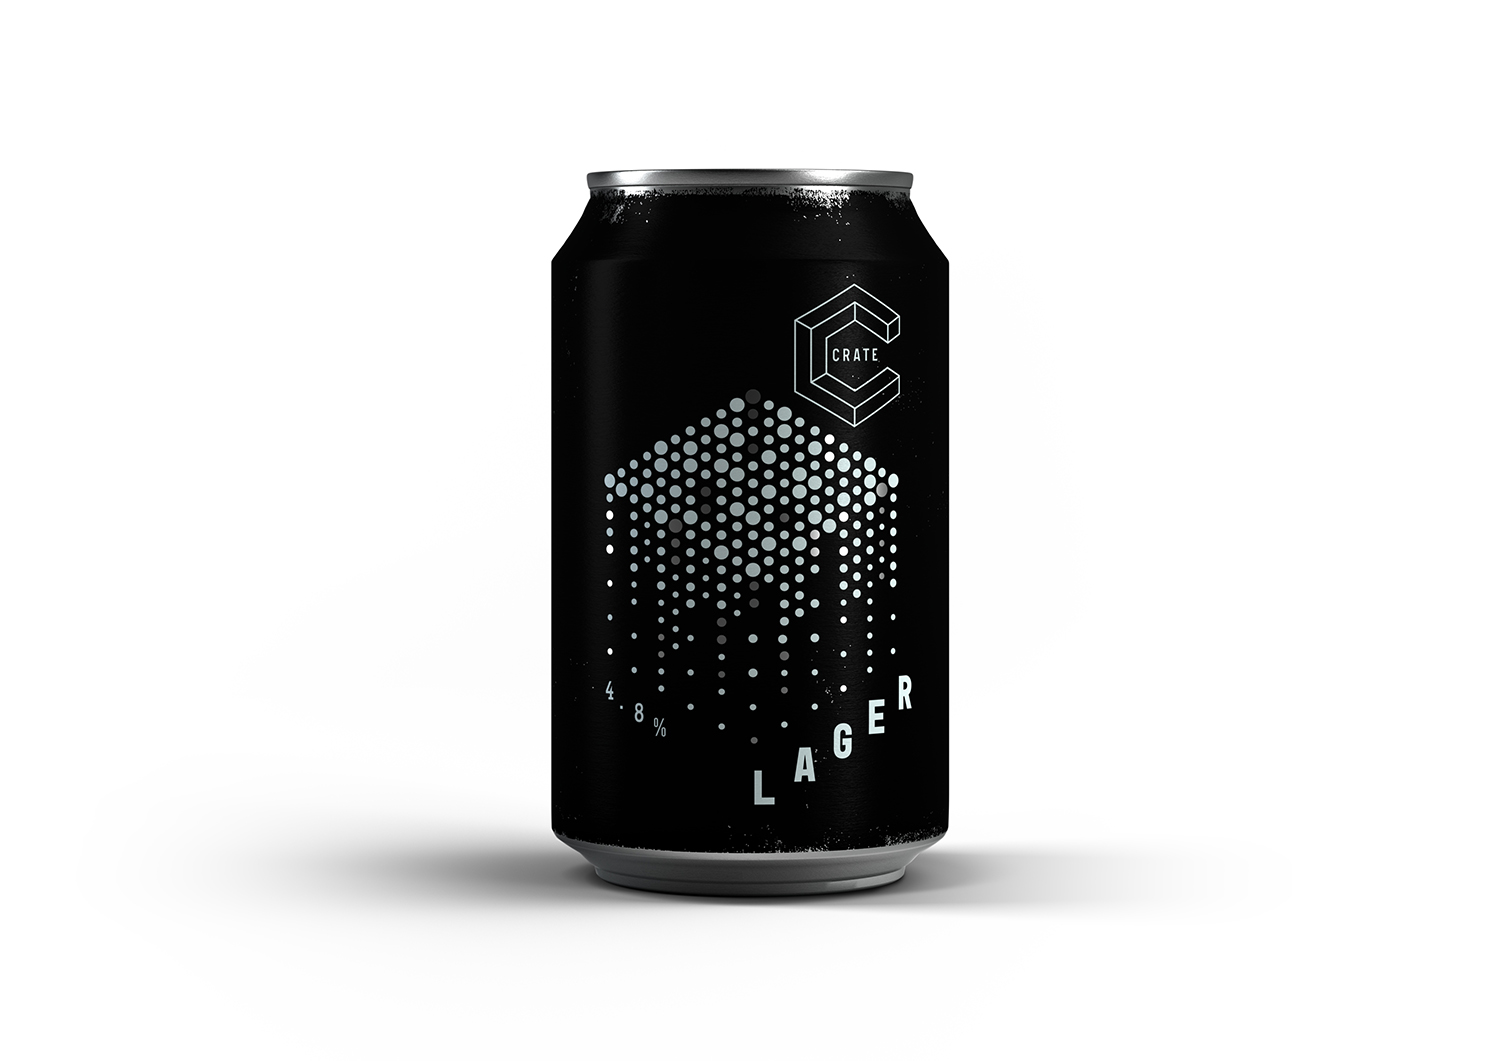 craft-beer-can-3d-packshot-01